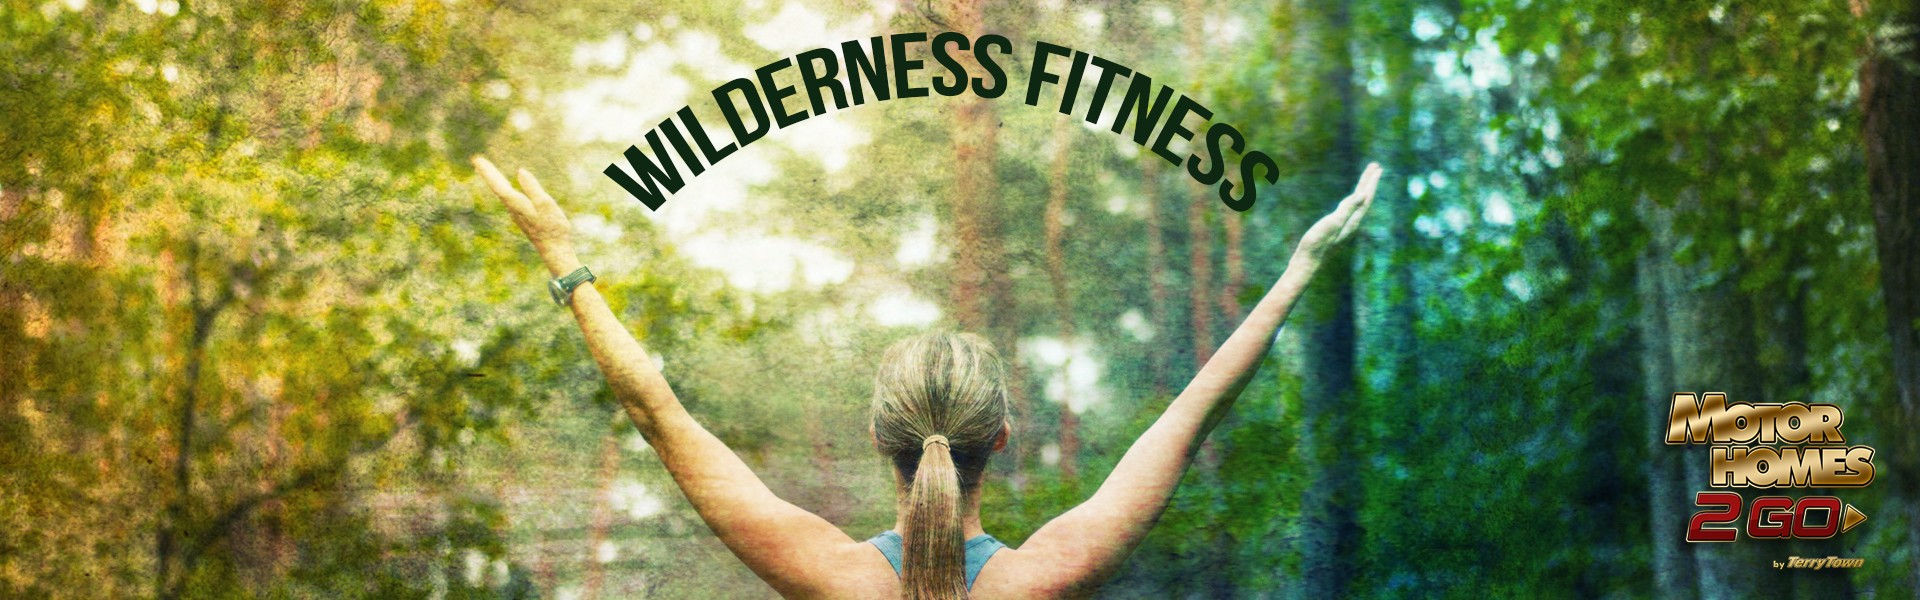 Wilderness fitness - Woman in workout clothes with arms raised in forest